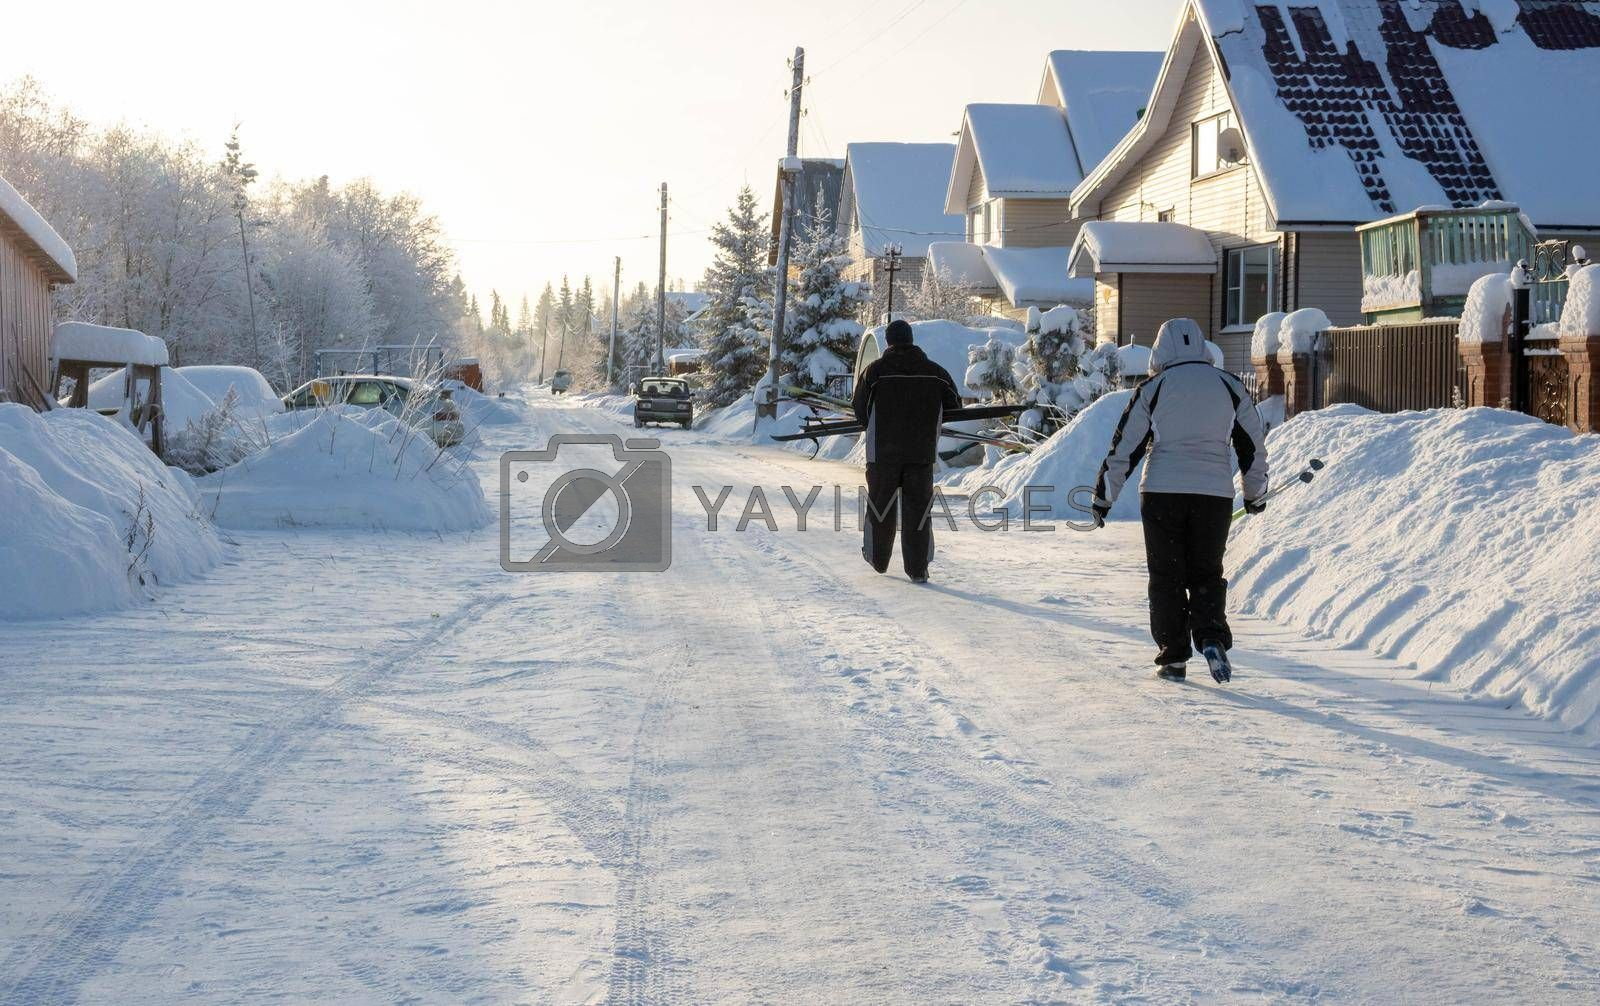 Frosty rural road landscape. Winter snow-covered rural road. People are coming from a ski trip, faces are not visible.